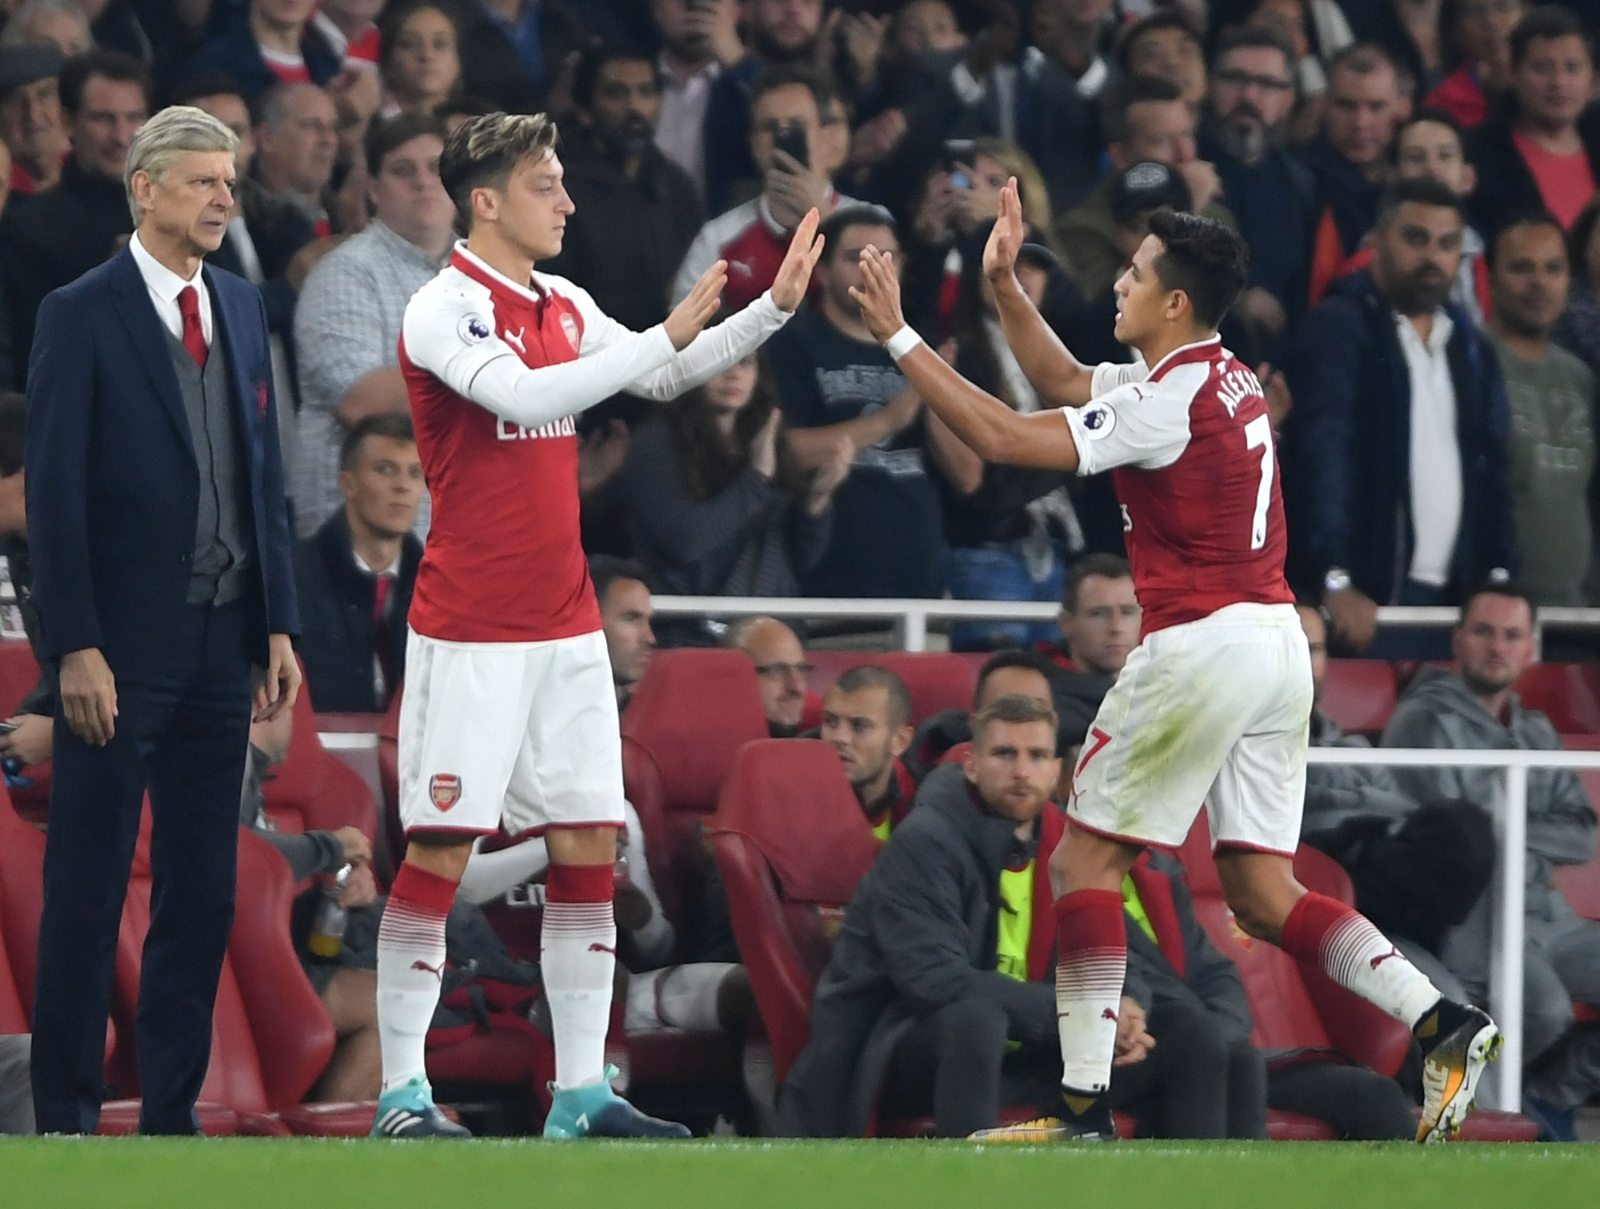 Alexis Sanchez and Mesut Ozil could leave Arsenal in January - Wenger